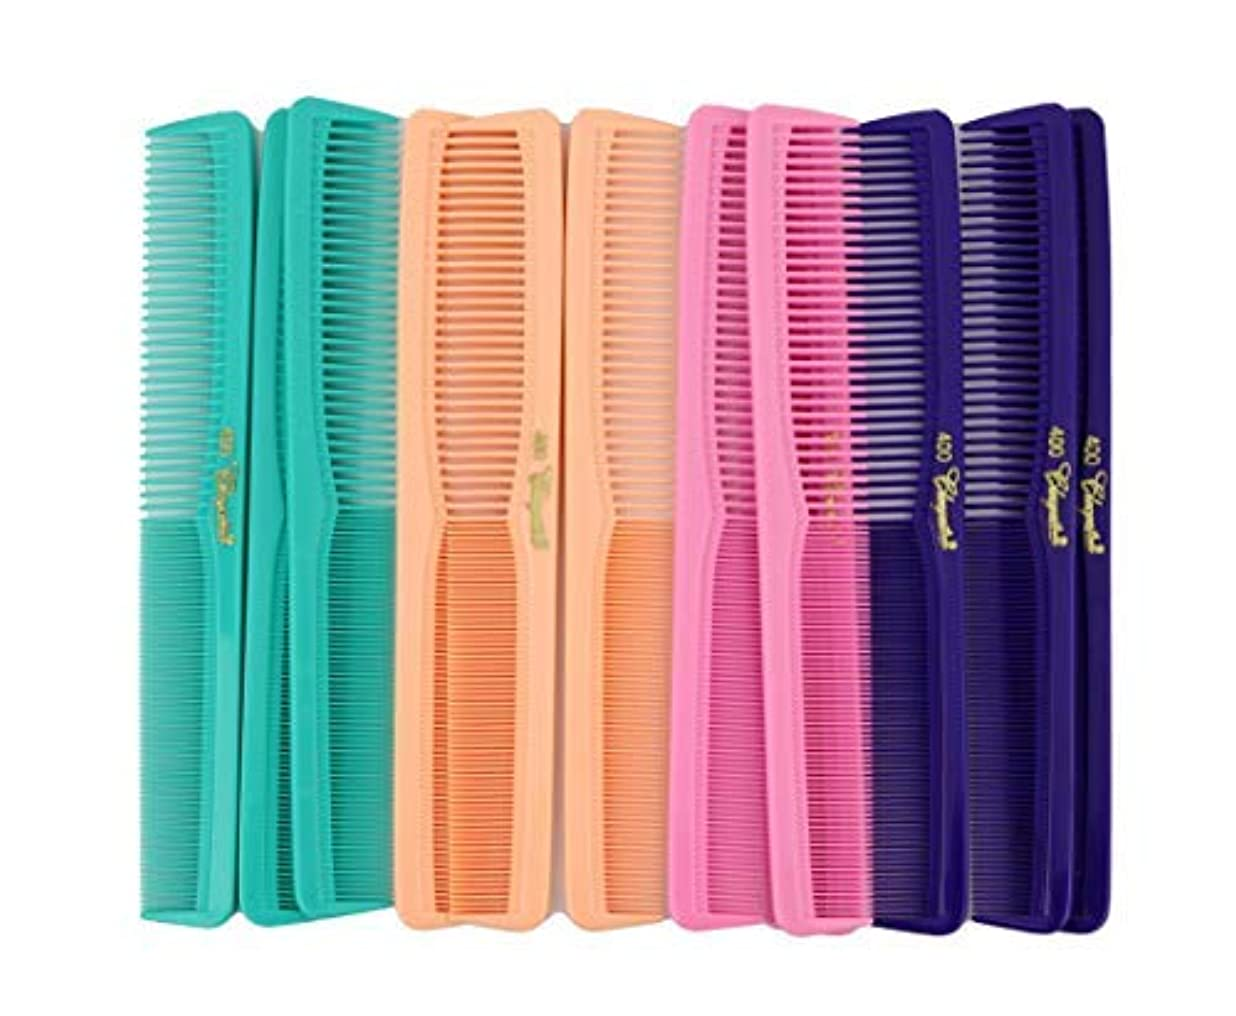 縮約れるアラバマ7 inch All Purpose Hair Comb. Hair Cutting Combs. Barber's & Hairstylist Combs. Fresh Mix 12 Units. [並行輸入品]